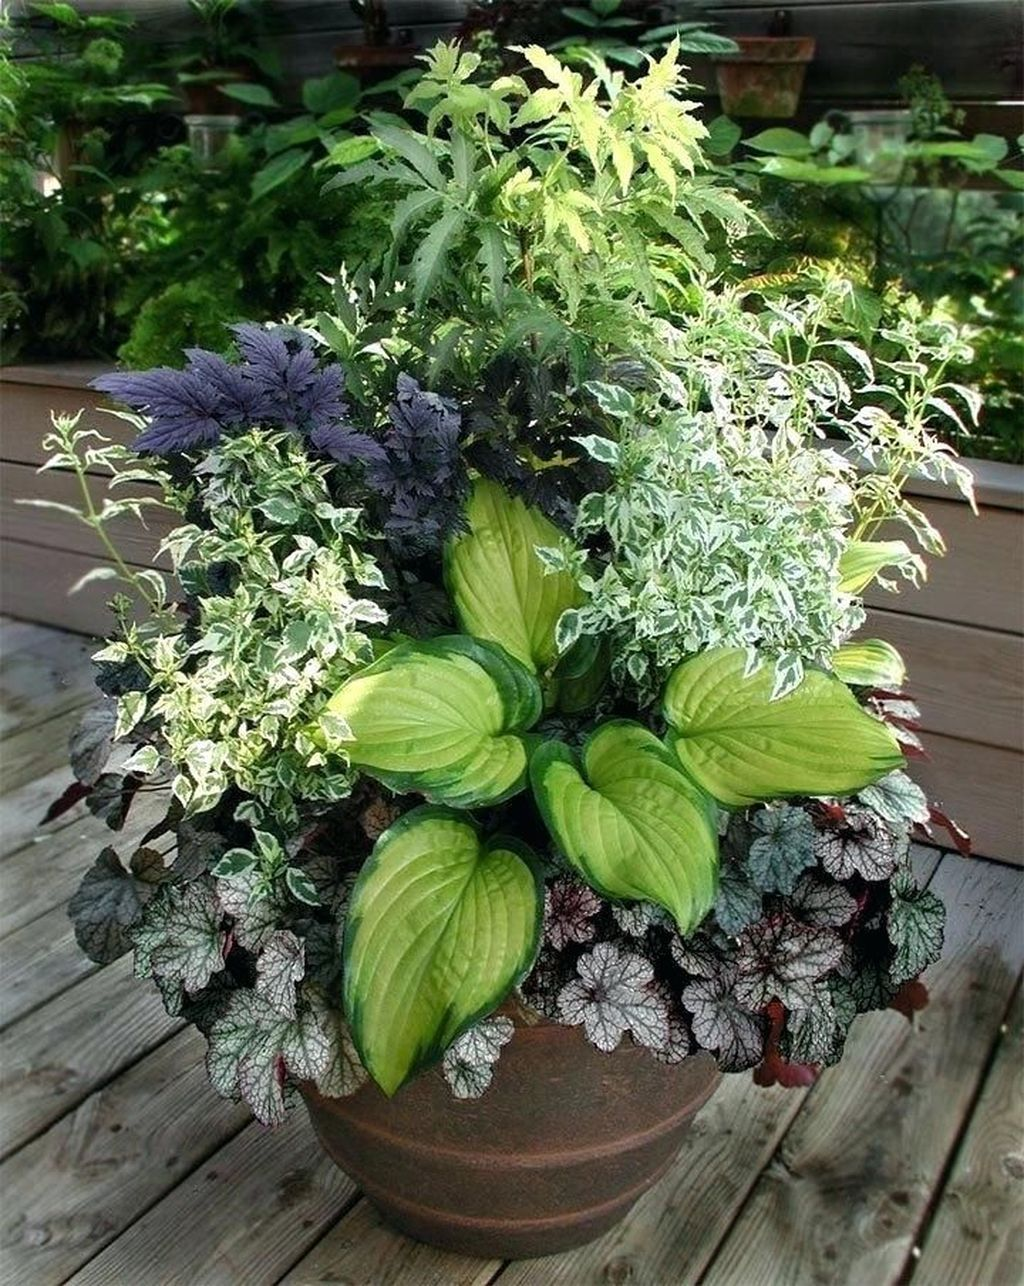 30 Stunning Container Plant Garden Ideas For Patio 30 Stunning Container Plant Garden Ideas For Patio In 2020 Garden Containers Plants Container Gardening